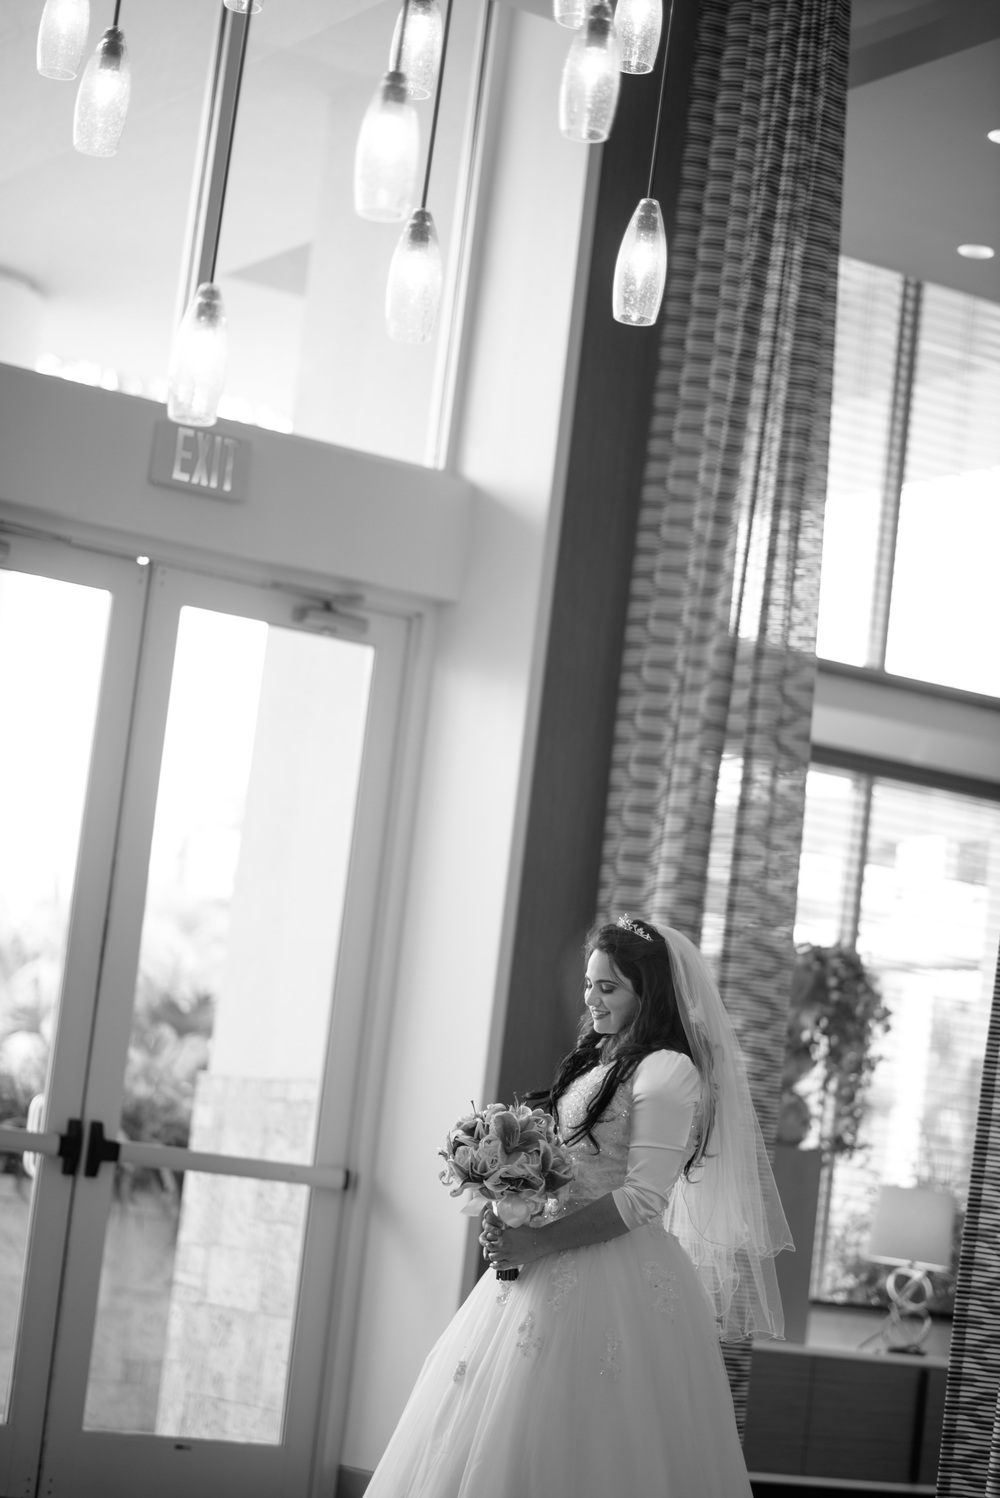 Wedding by Levikfoto.com-081.jpg